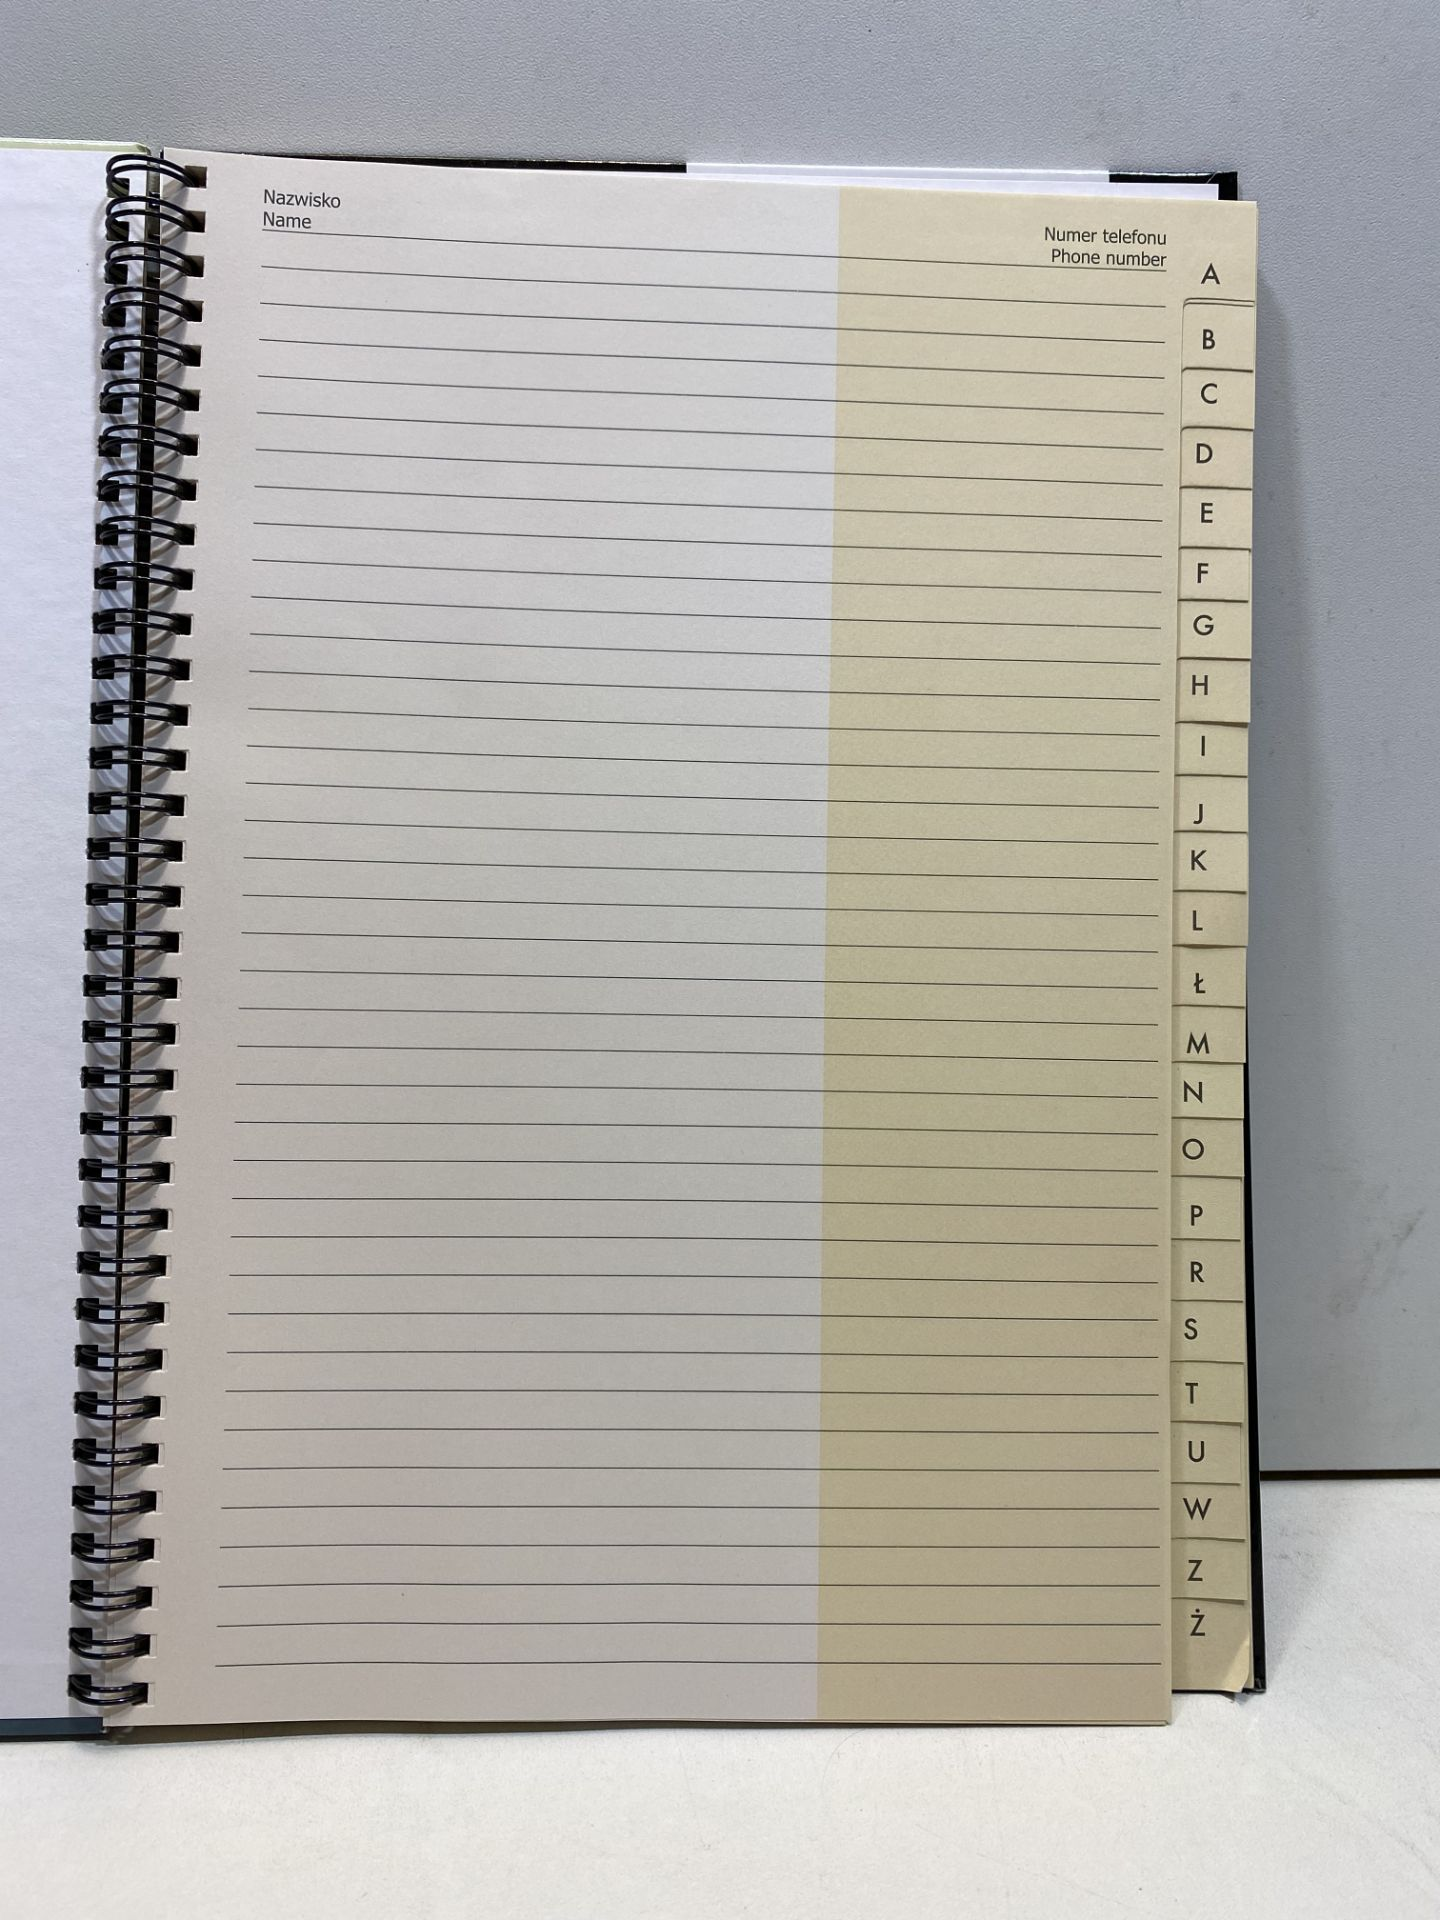 3 x Interdruk SKA4F Spiral Hardcover Address Book A4= with Index, Multi-Colour   5902277171108 - Image 3 of 3